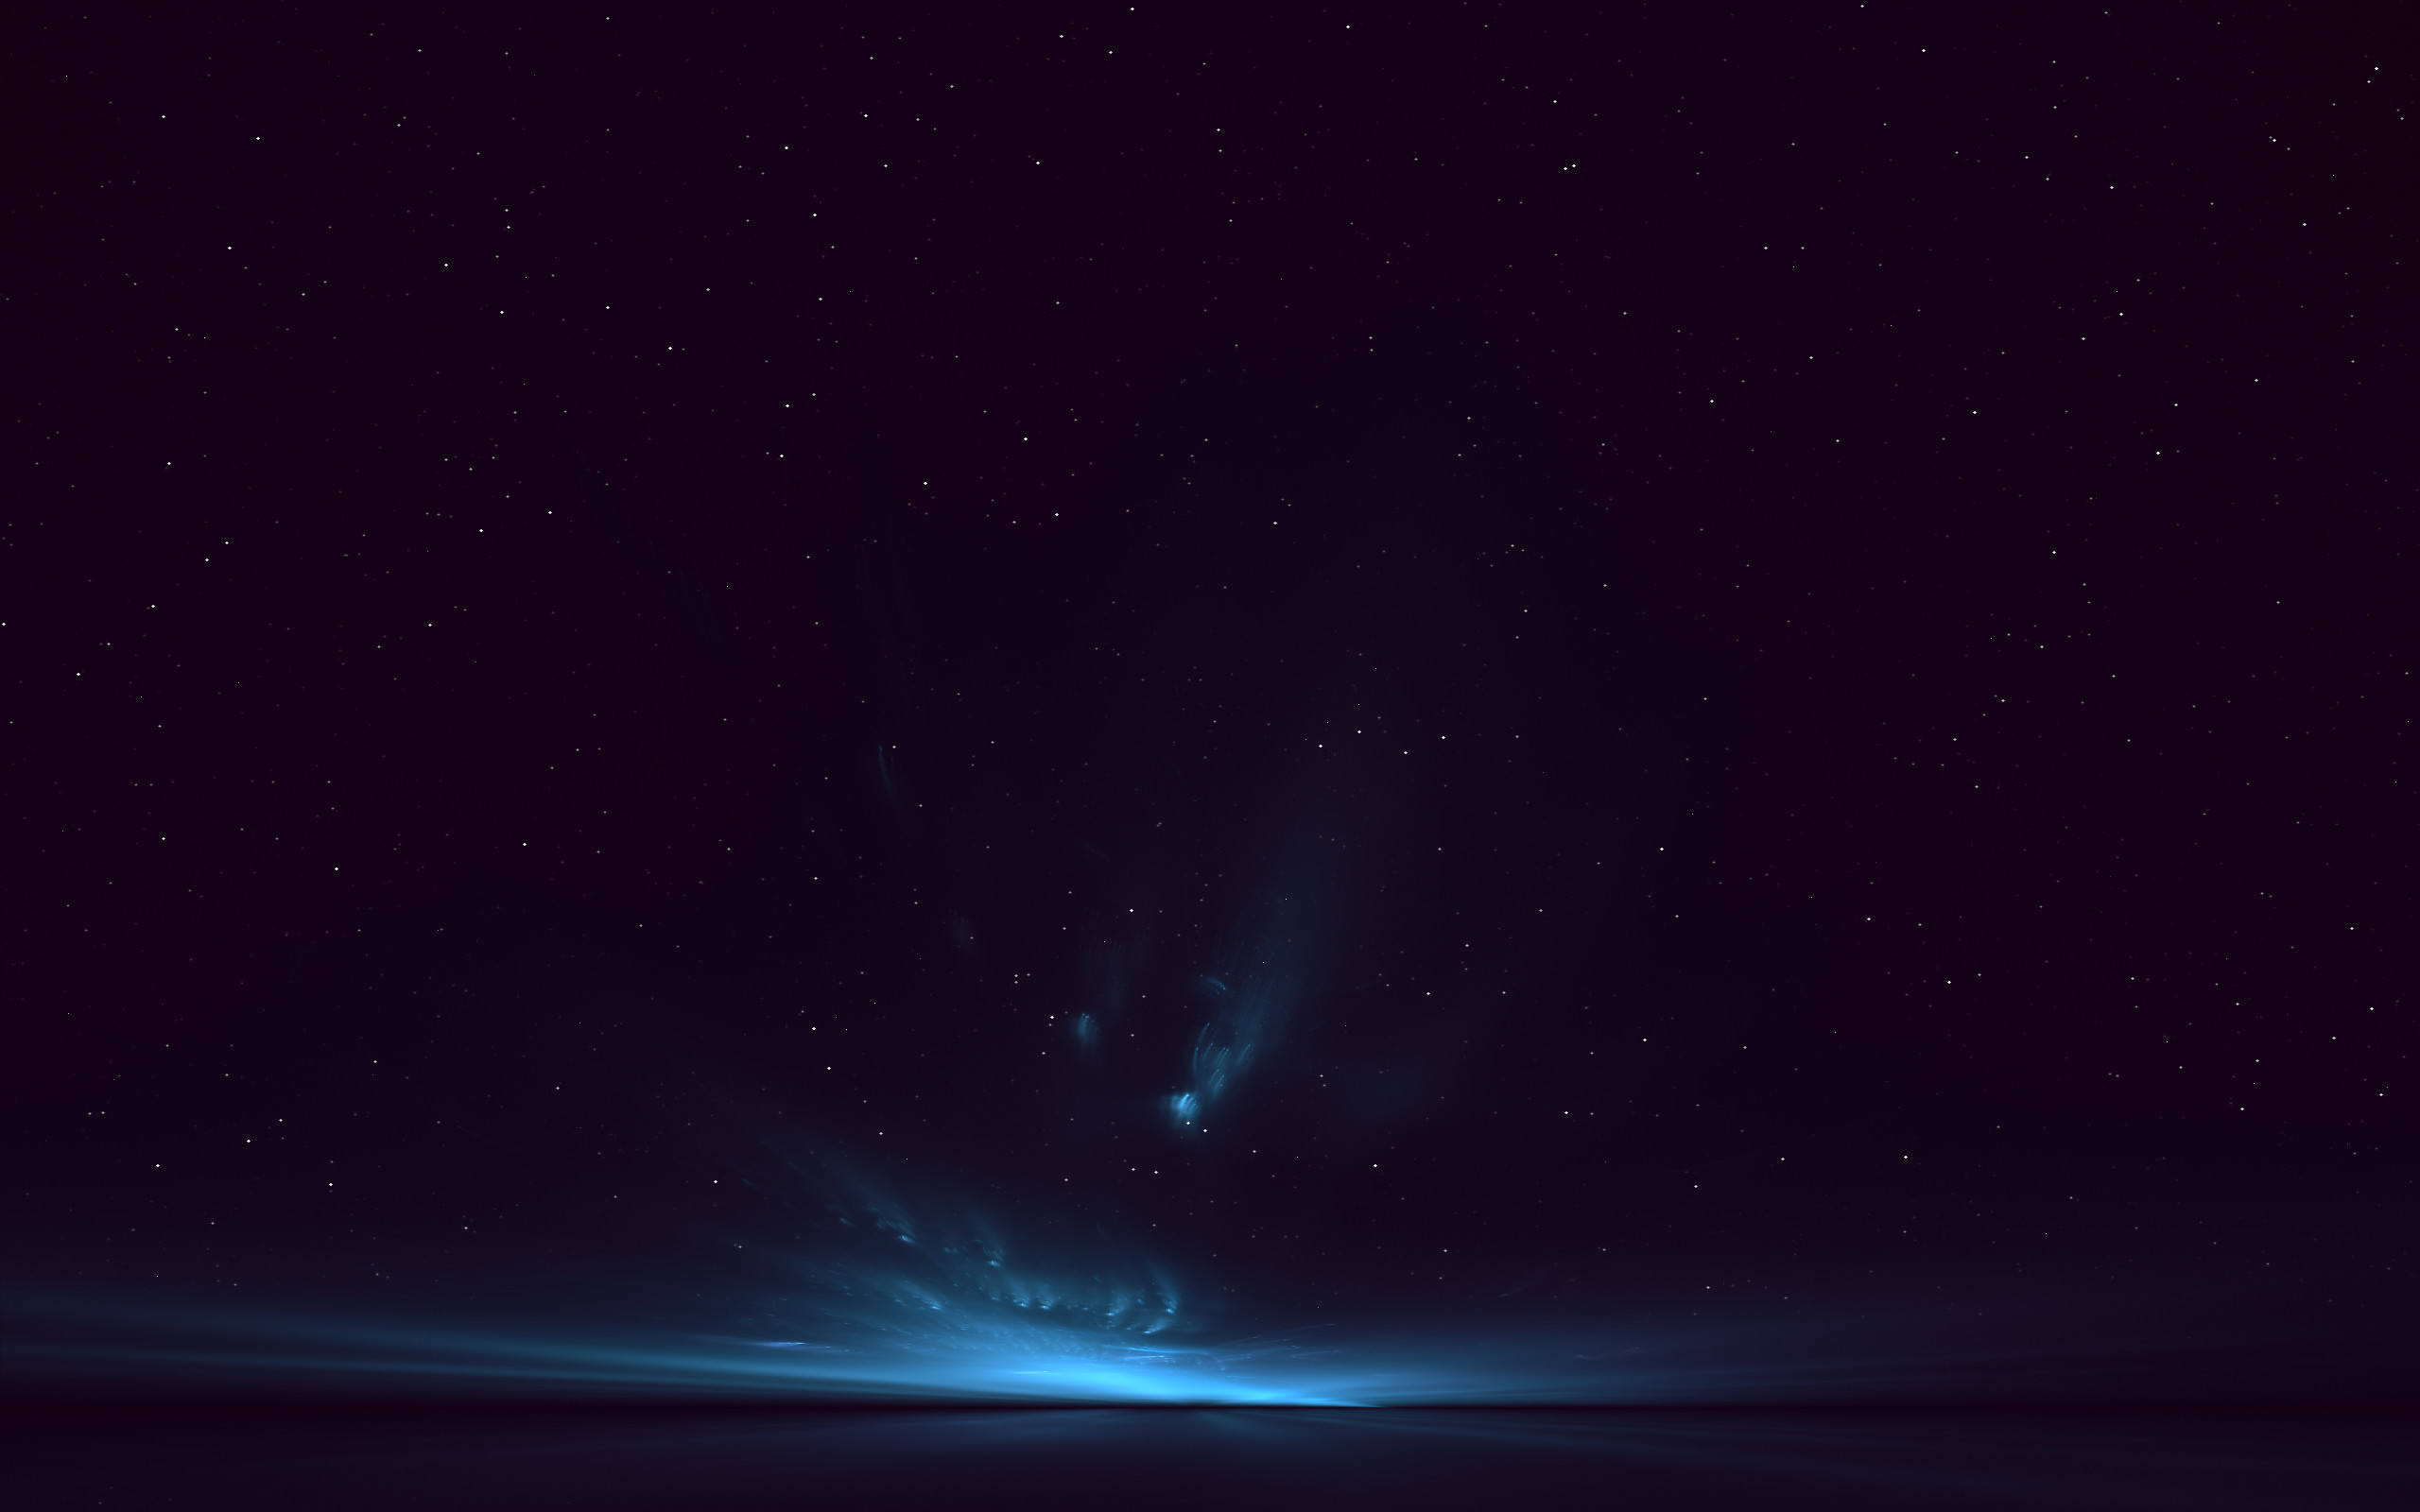 Dark blue space wallpaper 76 images - Dark space hd ...